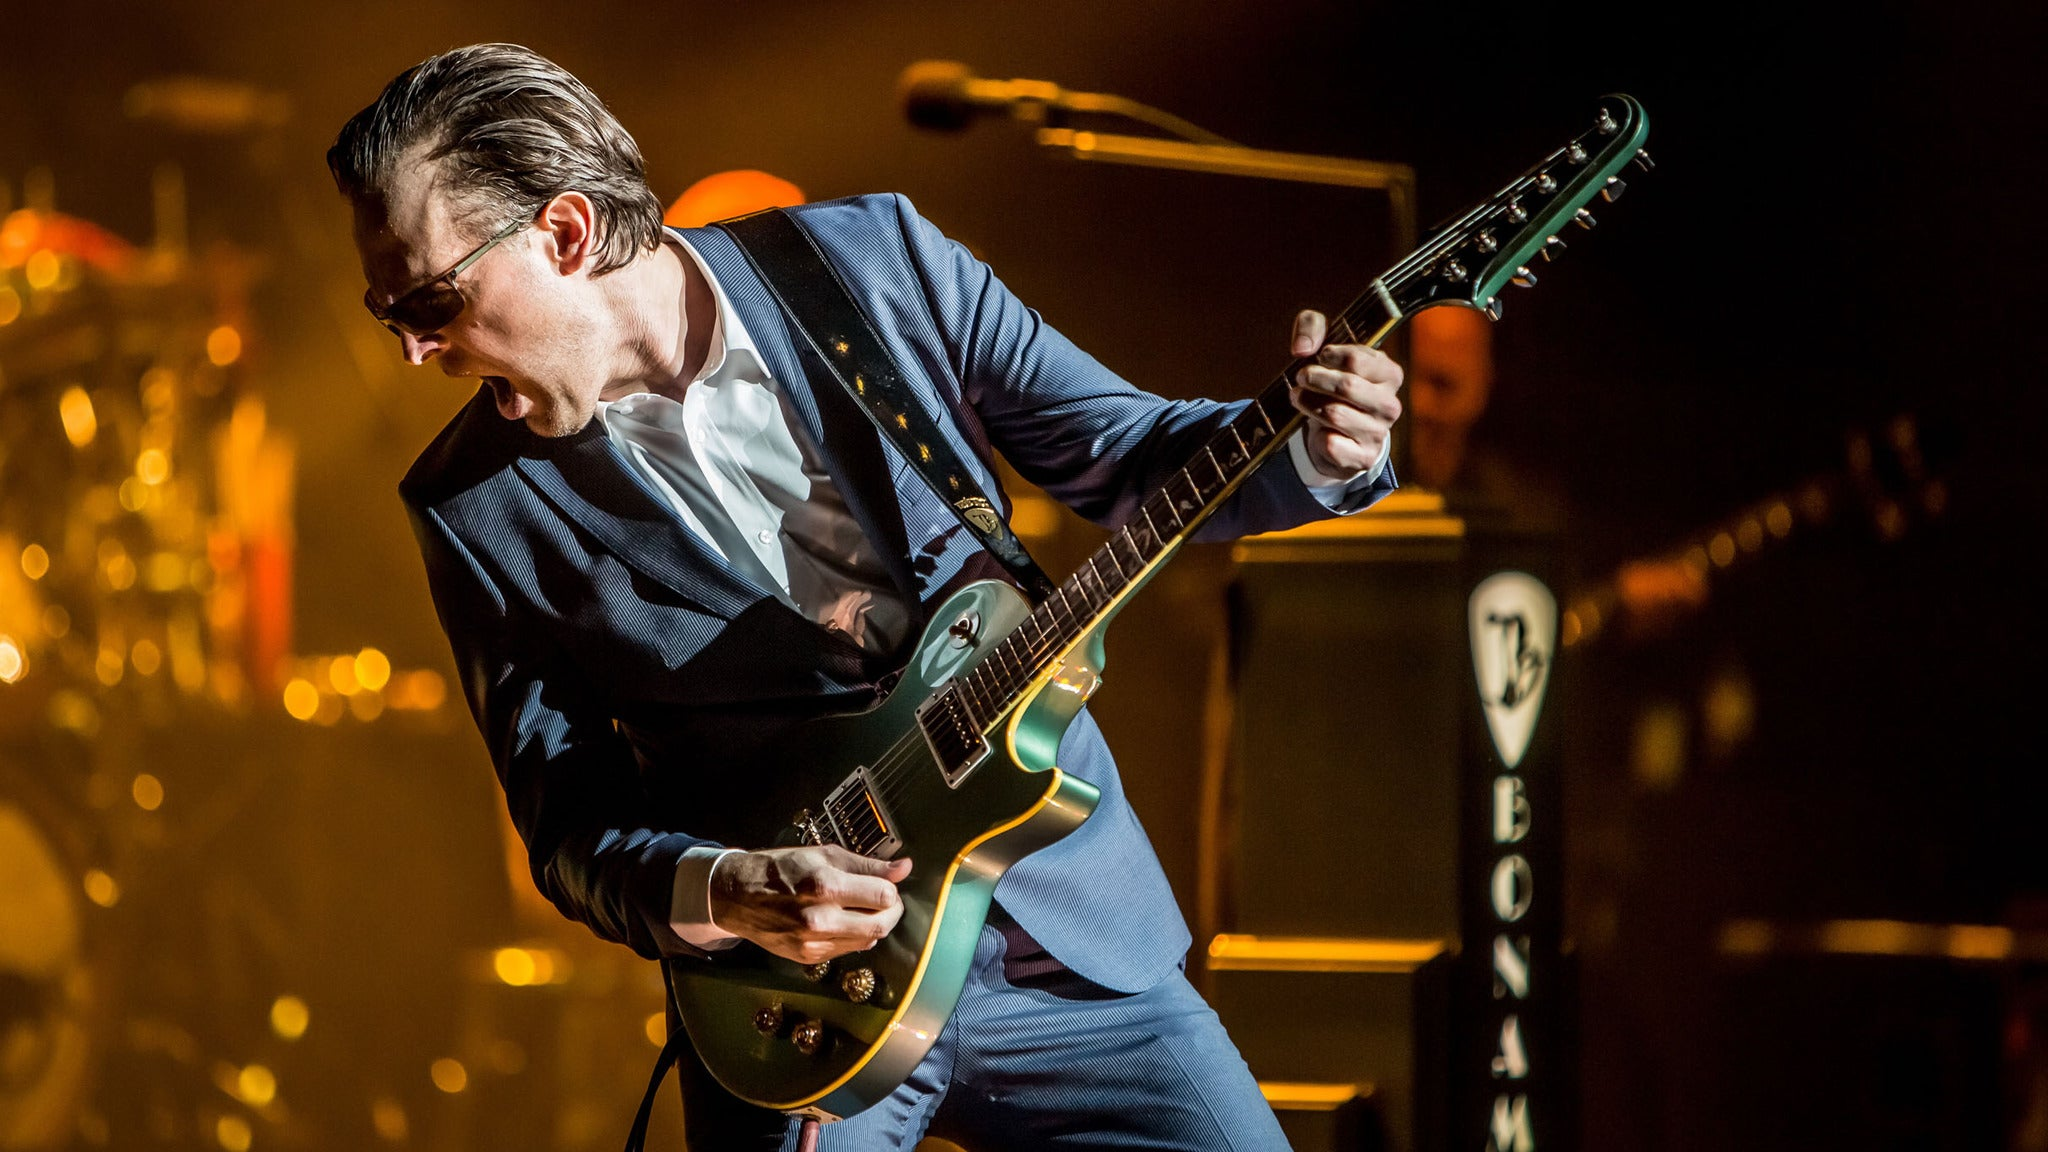 Joe Bonamassa at Fox Performing Arts Center - RIVERSIDE, CA 92501